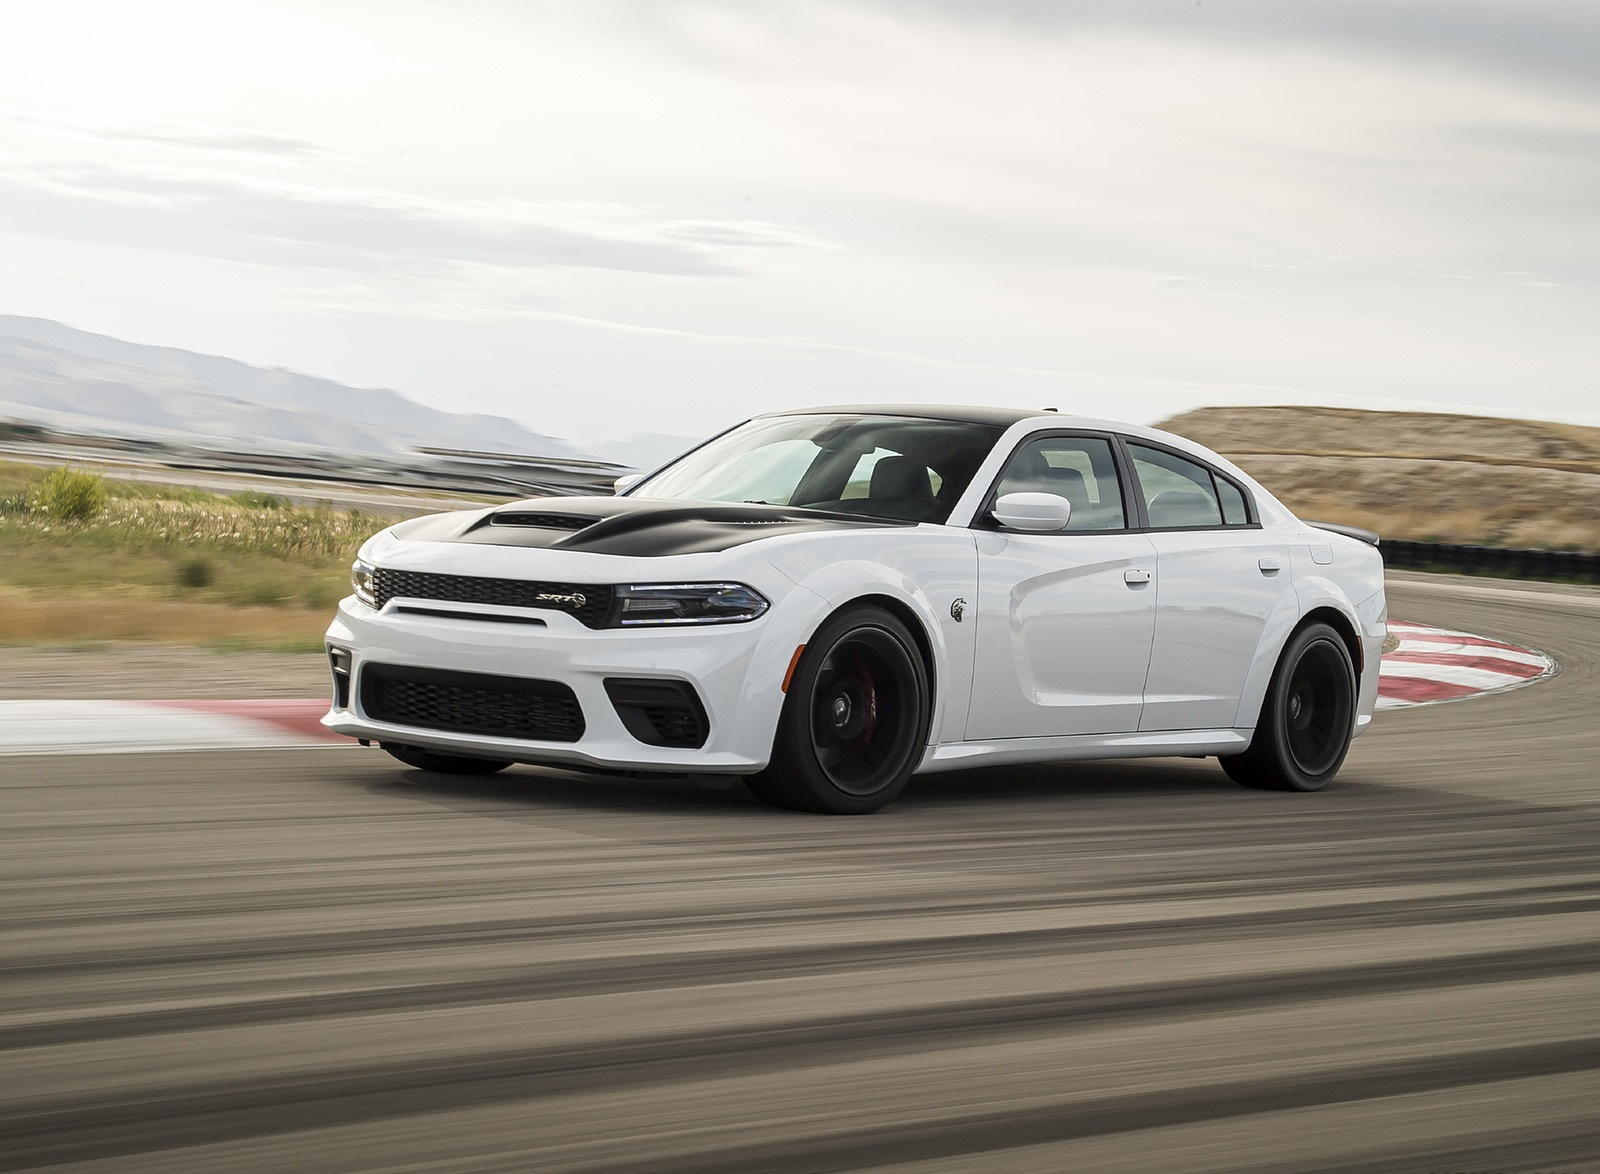 2021 Dodge Charger SRT Hellcat Redeye Front Three-Quarter Wallpapers (3)